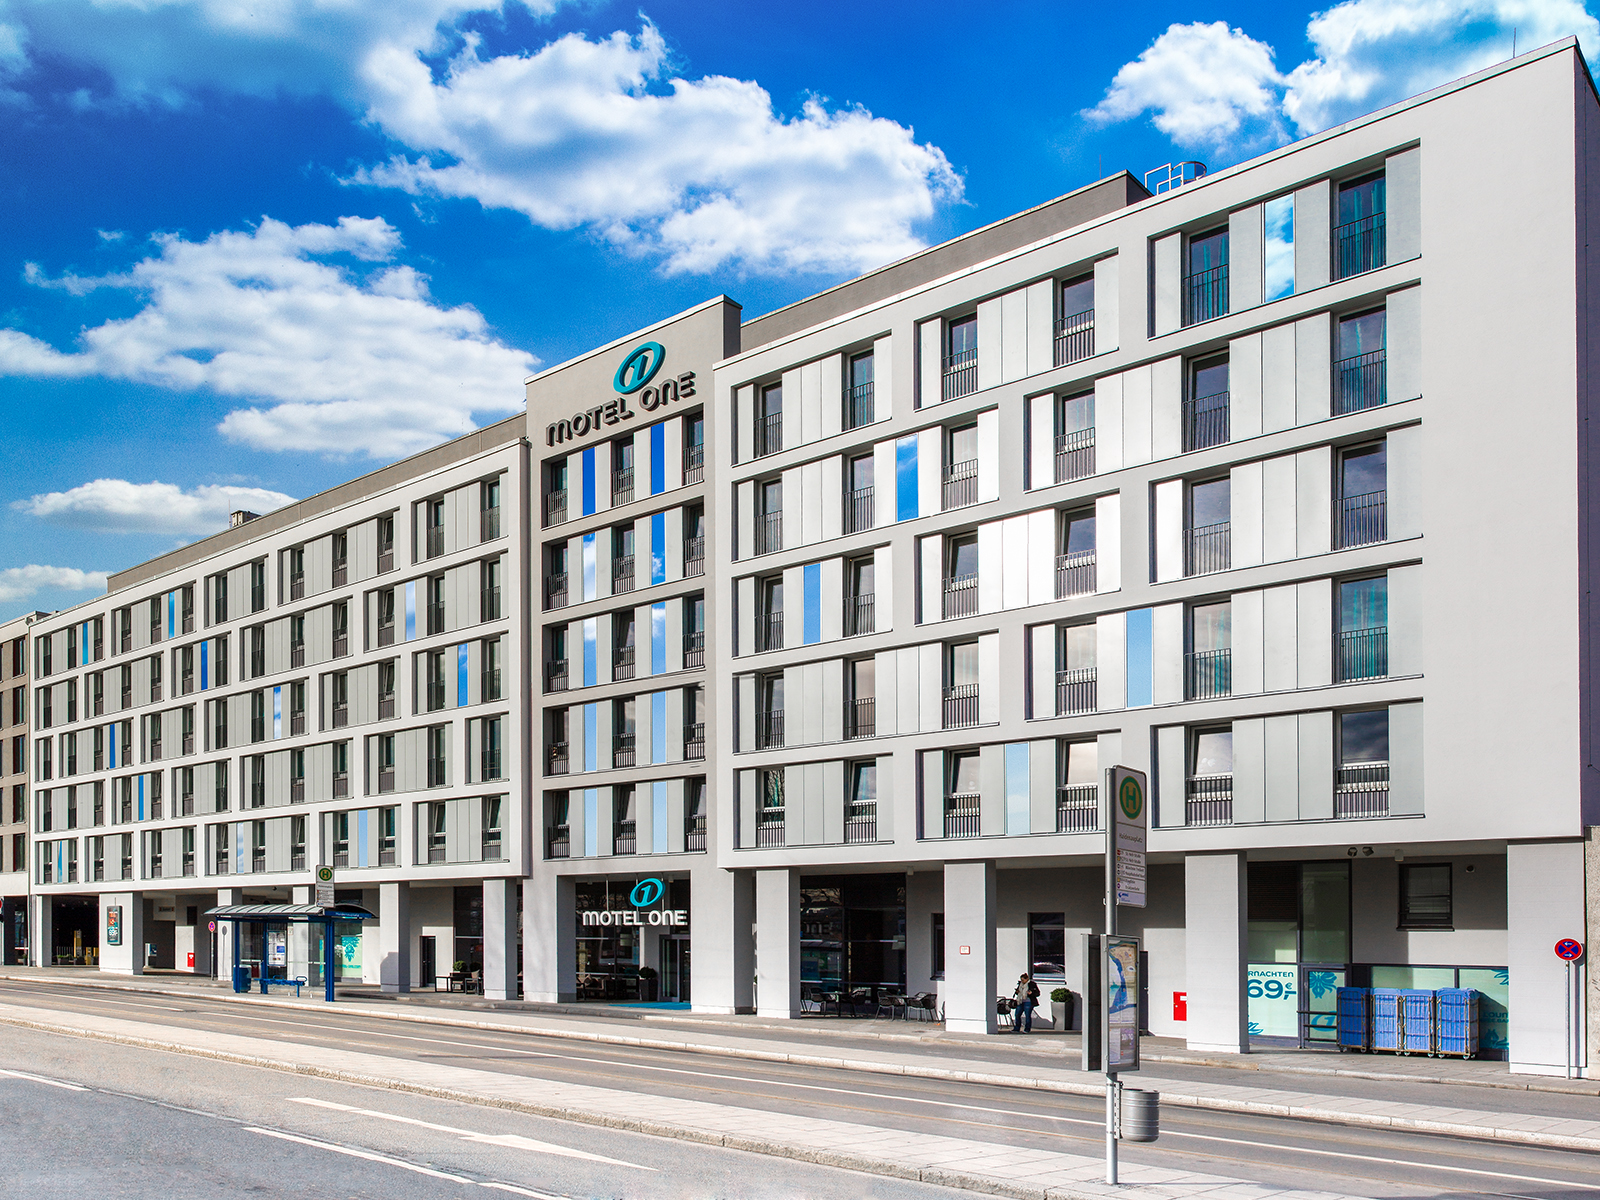 Motel one hotel fassadengestaltung orleansstra e 87 for Breckle motel one